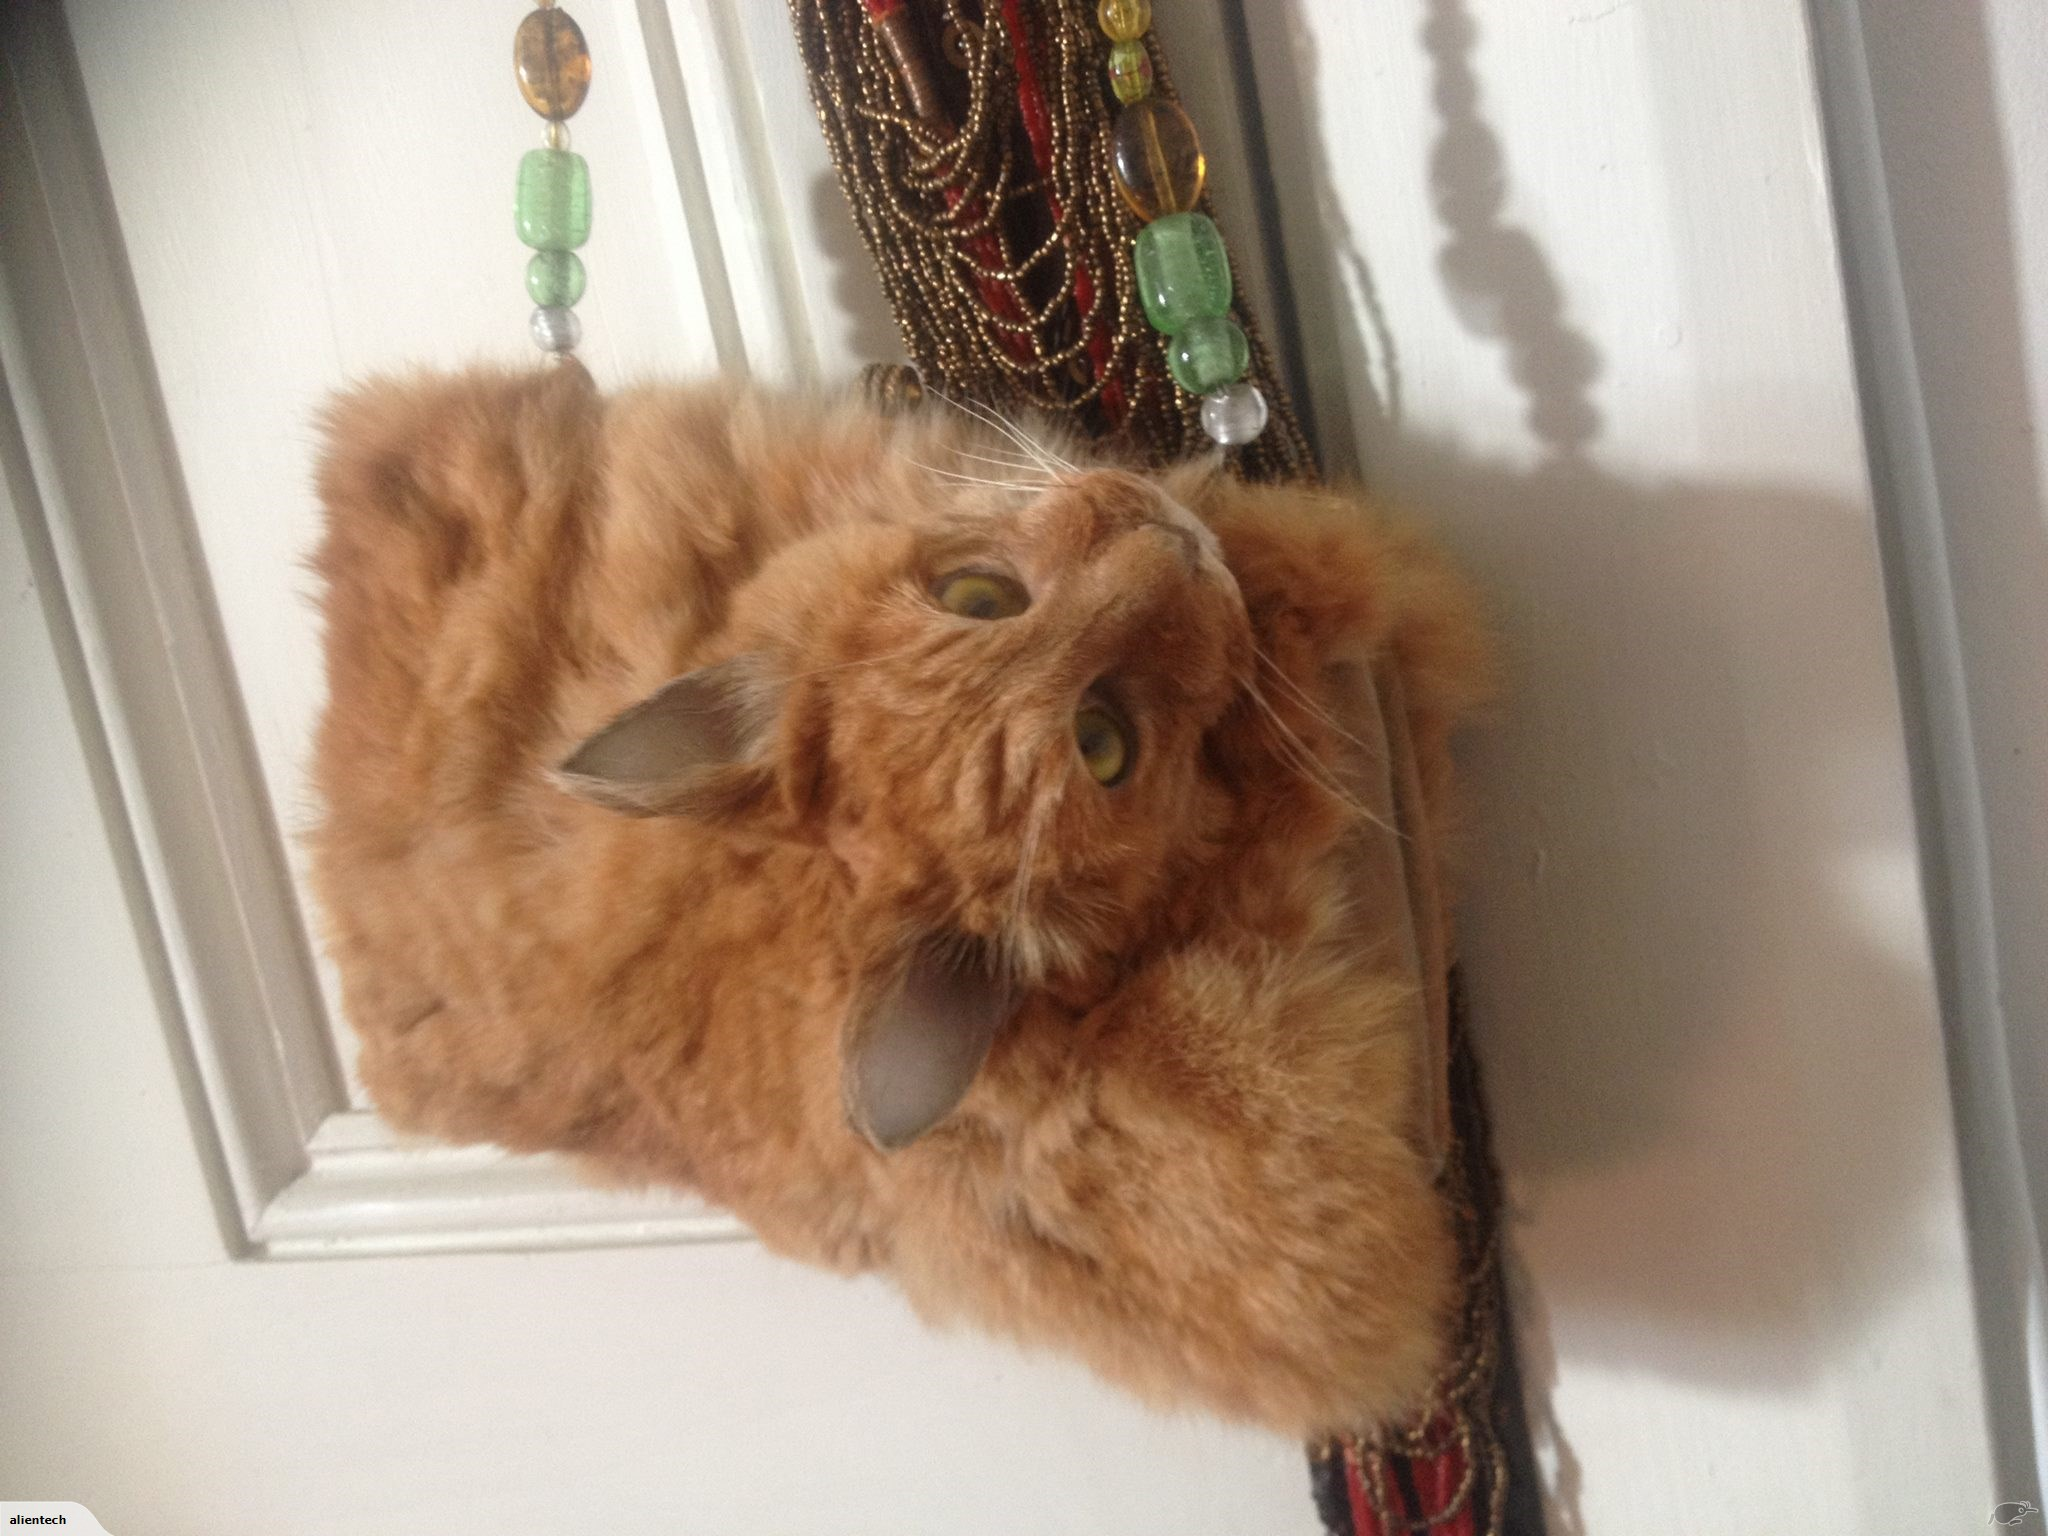 A purse made from a dead cat.